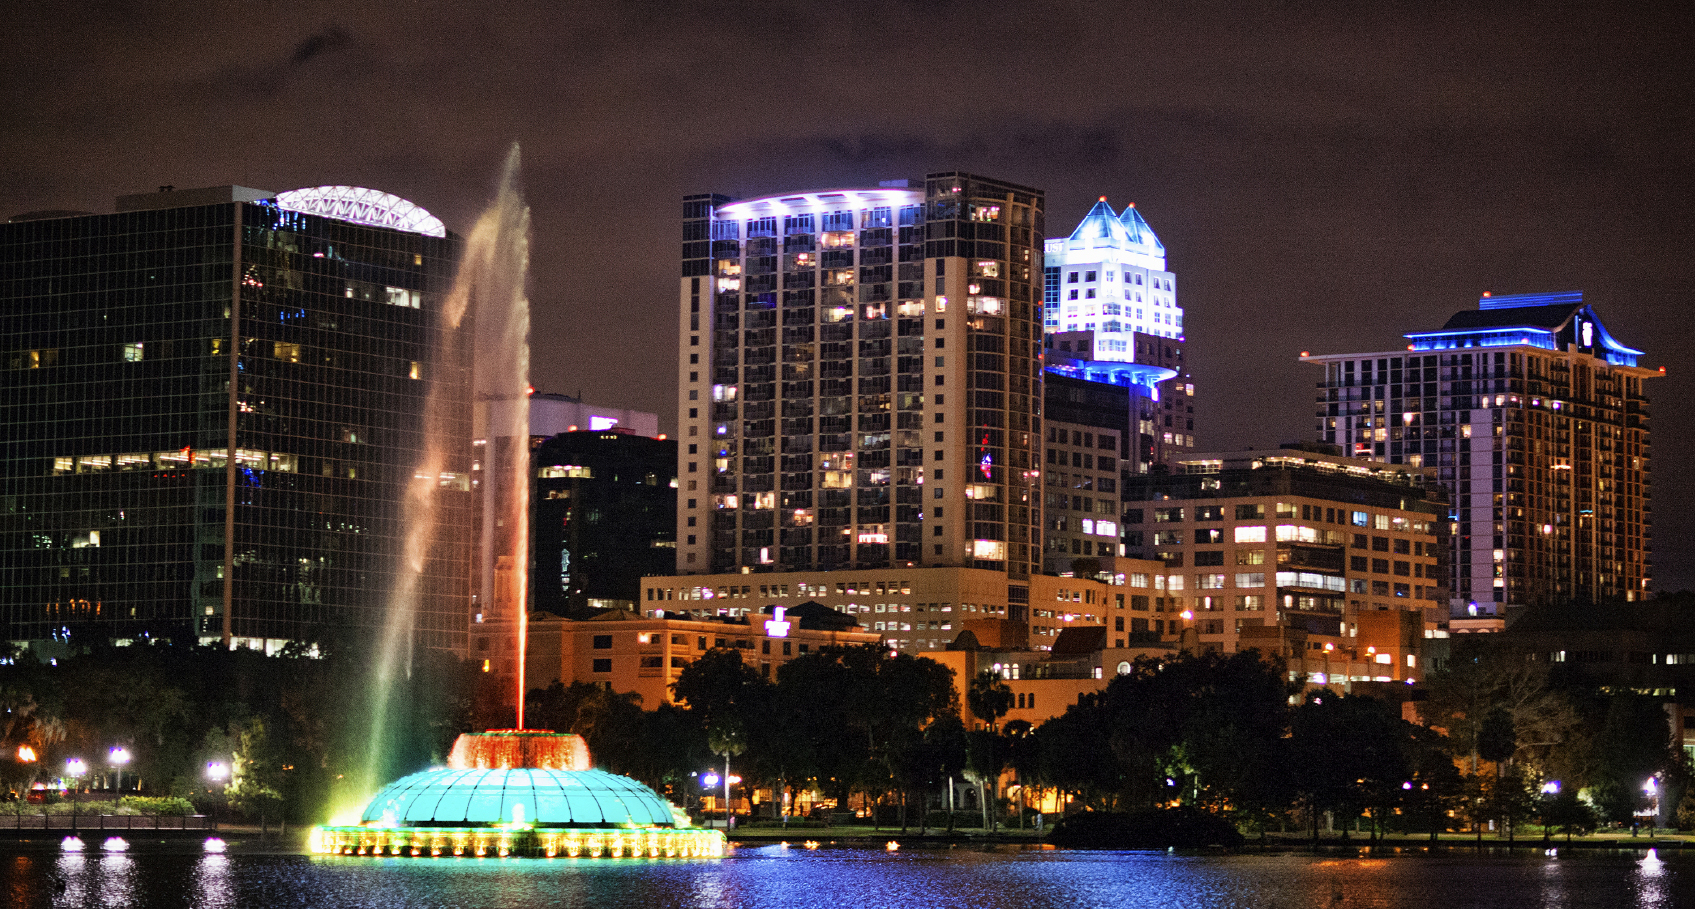 orlando-florida-downtown-at-night